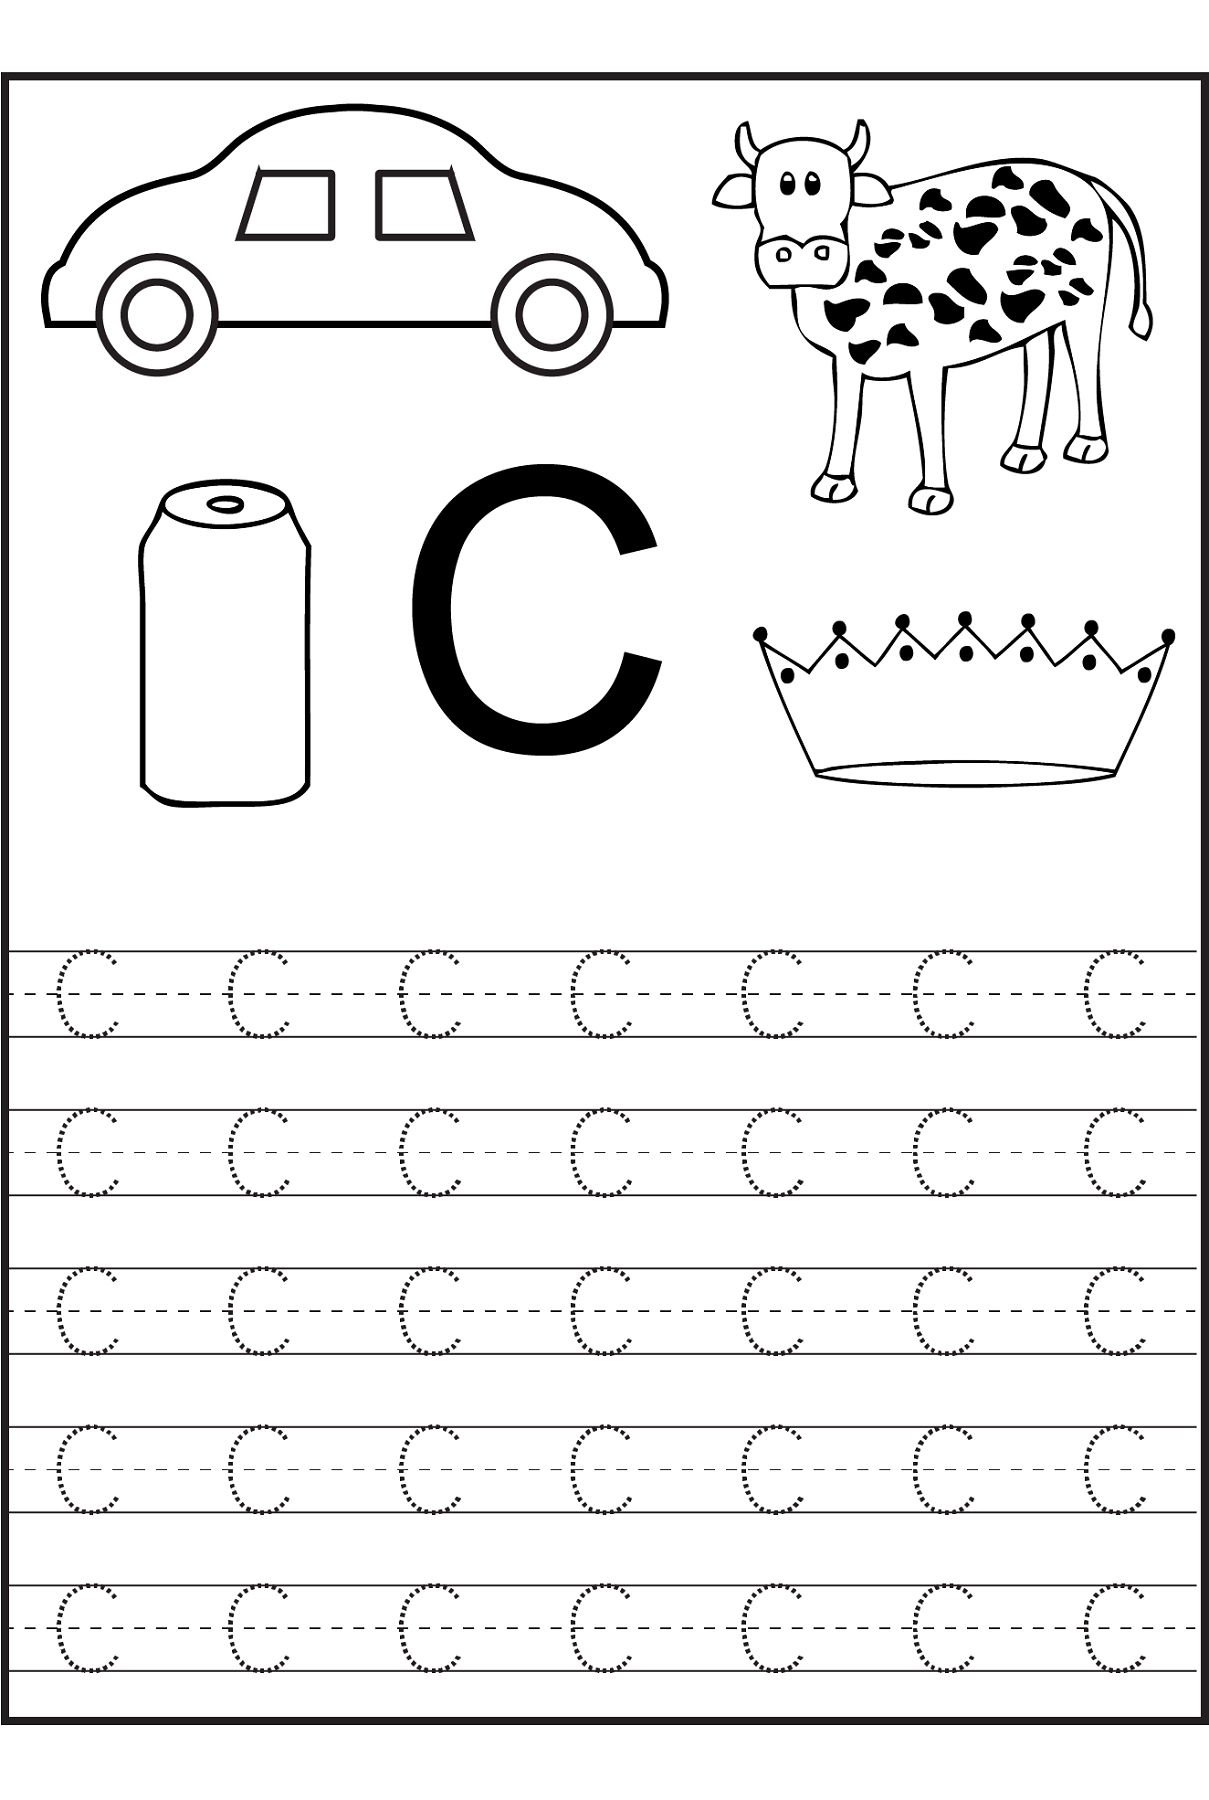 Trace The Letter C Worksheets | Alphabet And Numbers Learning - Free Printable Letter C Worksheets